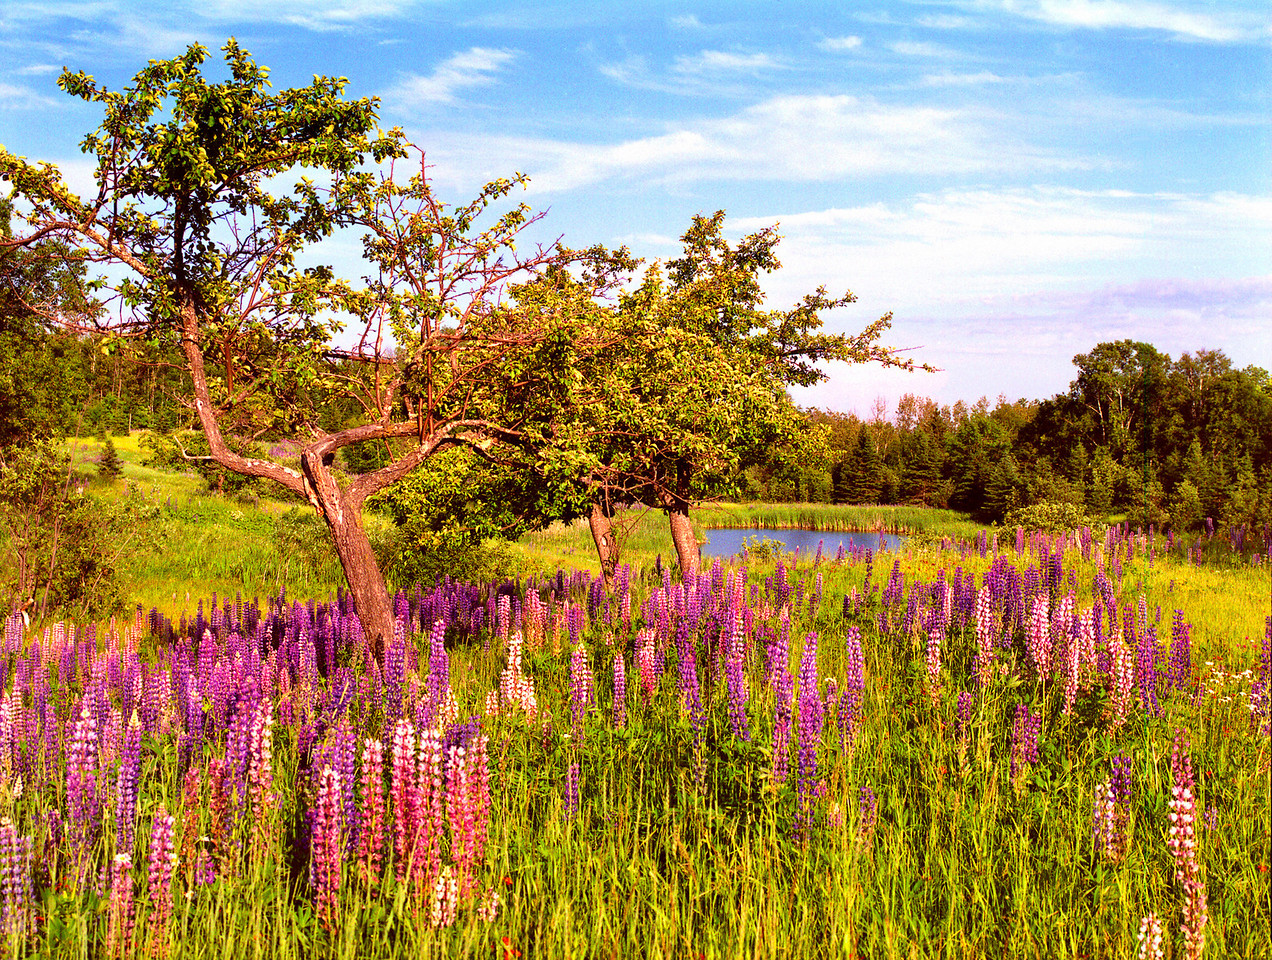 """Apples and Lupines"" This scene was photographed on the North Shore of Lake Superior near Lutsen, Minnesota."